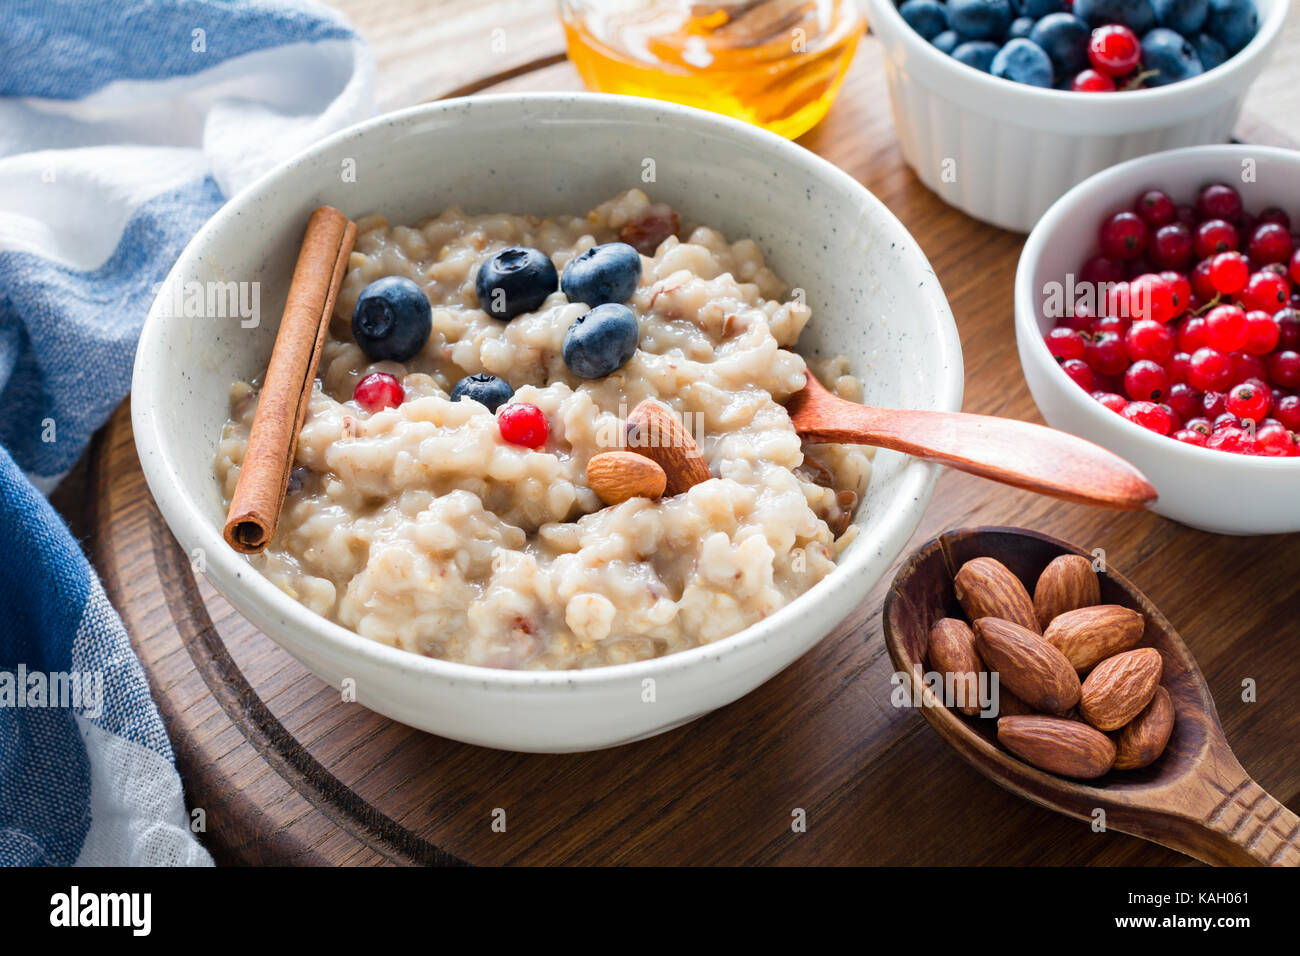 Oatmeal porridge with blueberries, almonds and currants in bowl. Healthy breakfast, dieting, balanced meal concept - Stock Image